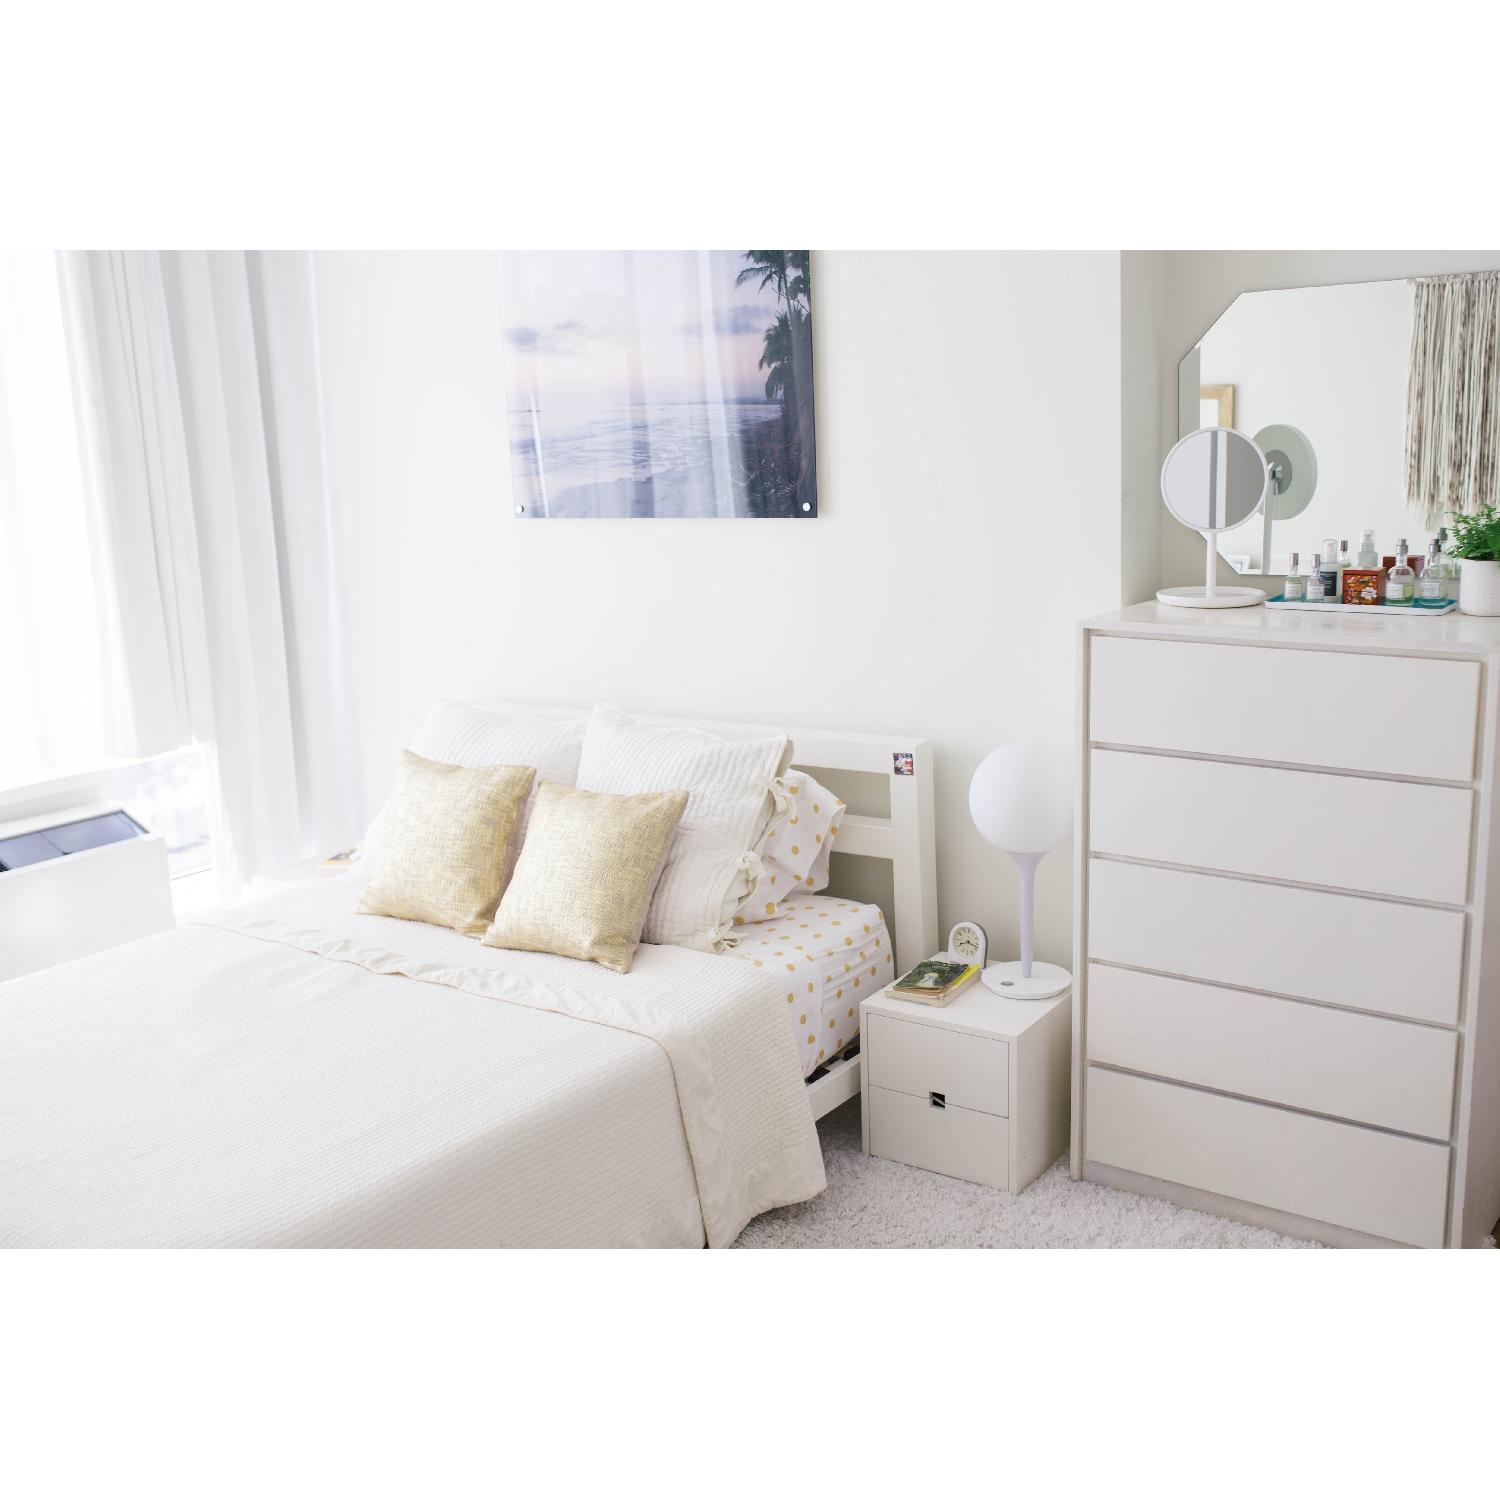 cb2 white metal queen bed frame1